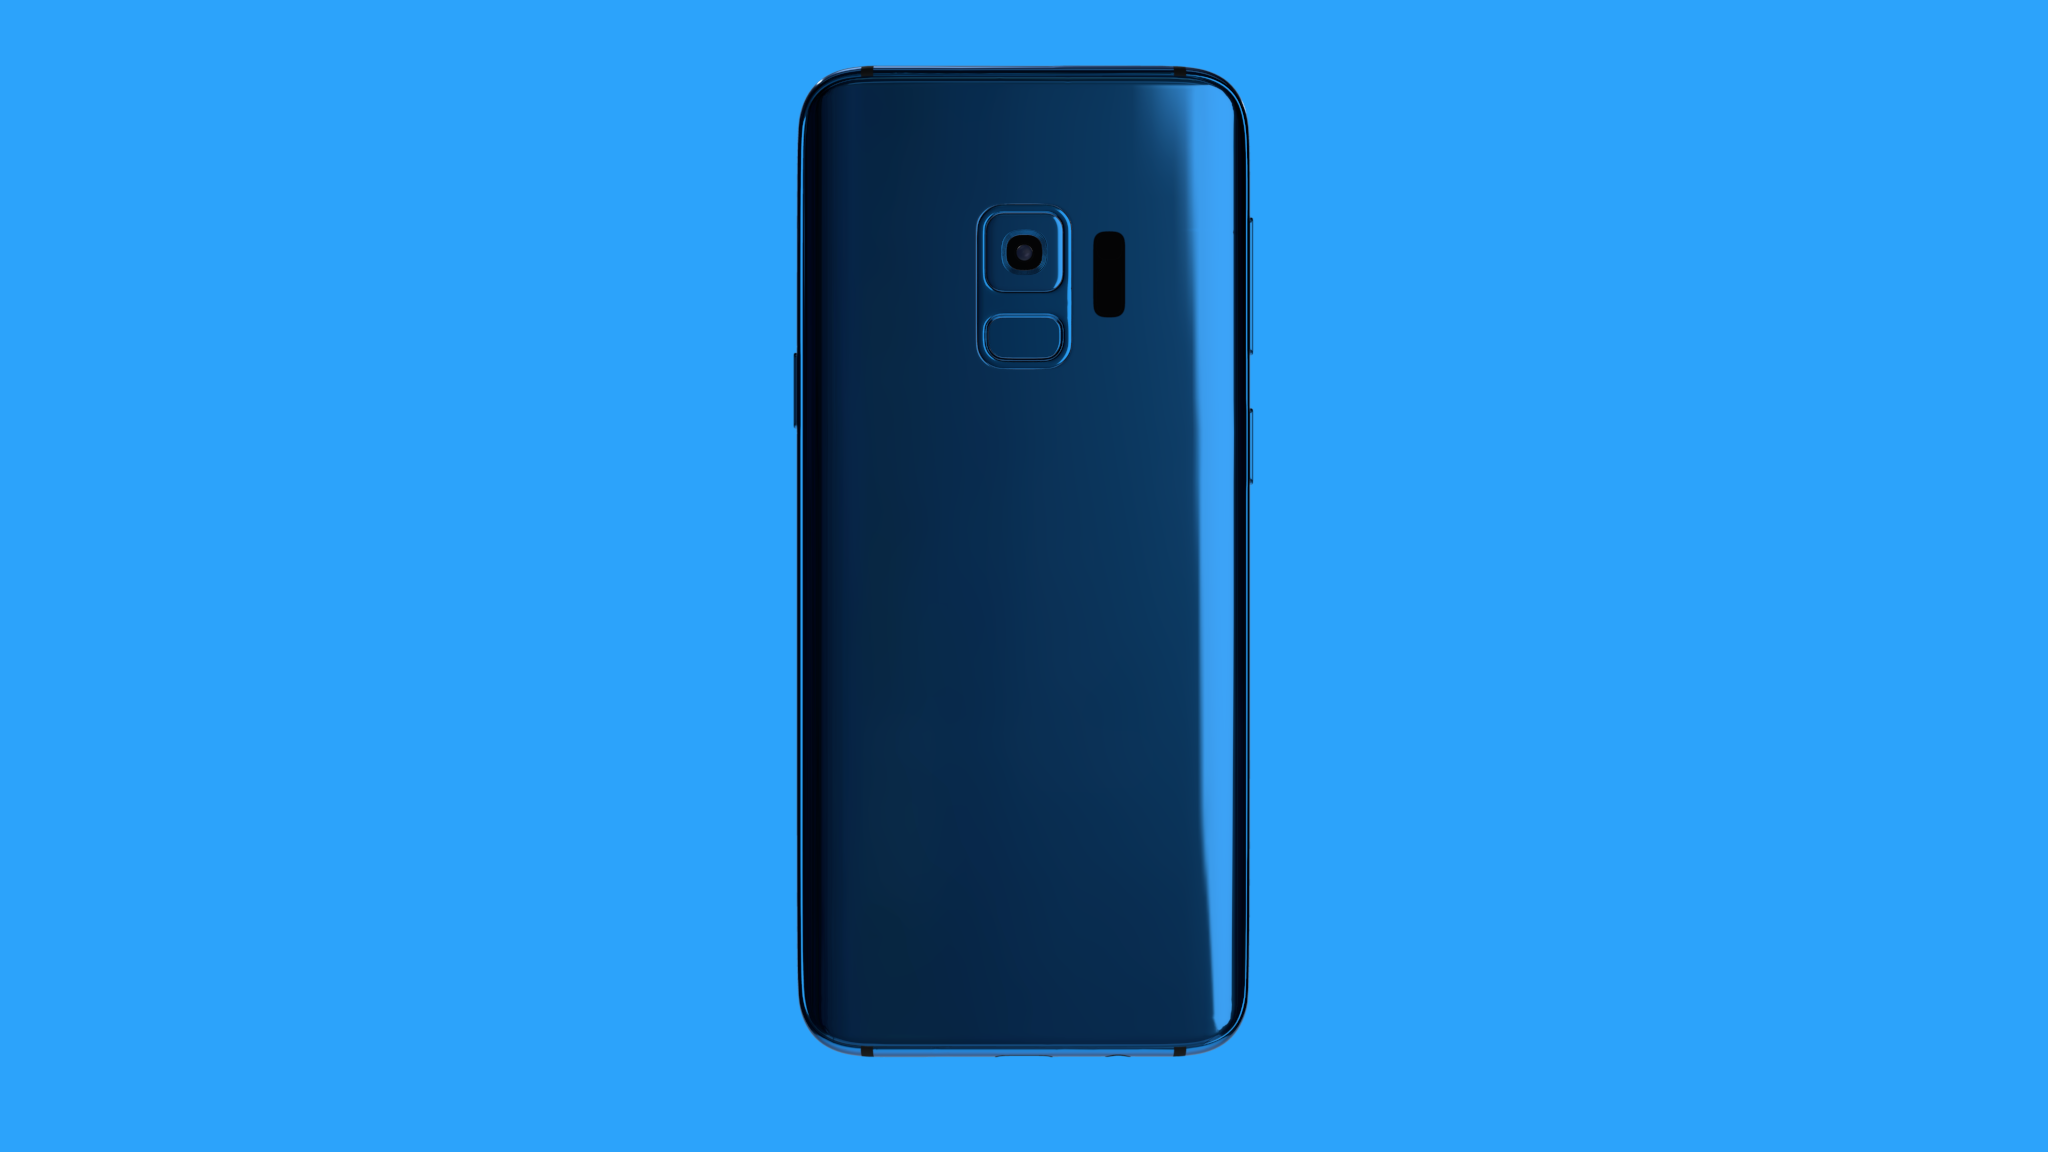 Blue Samsung phone mockup seen from back, in blue on blue background